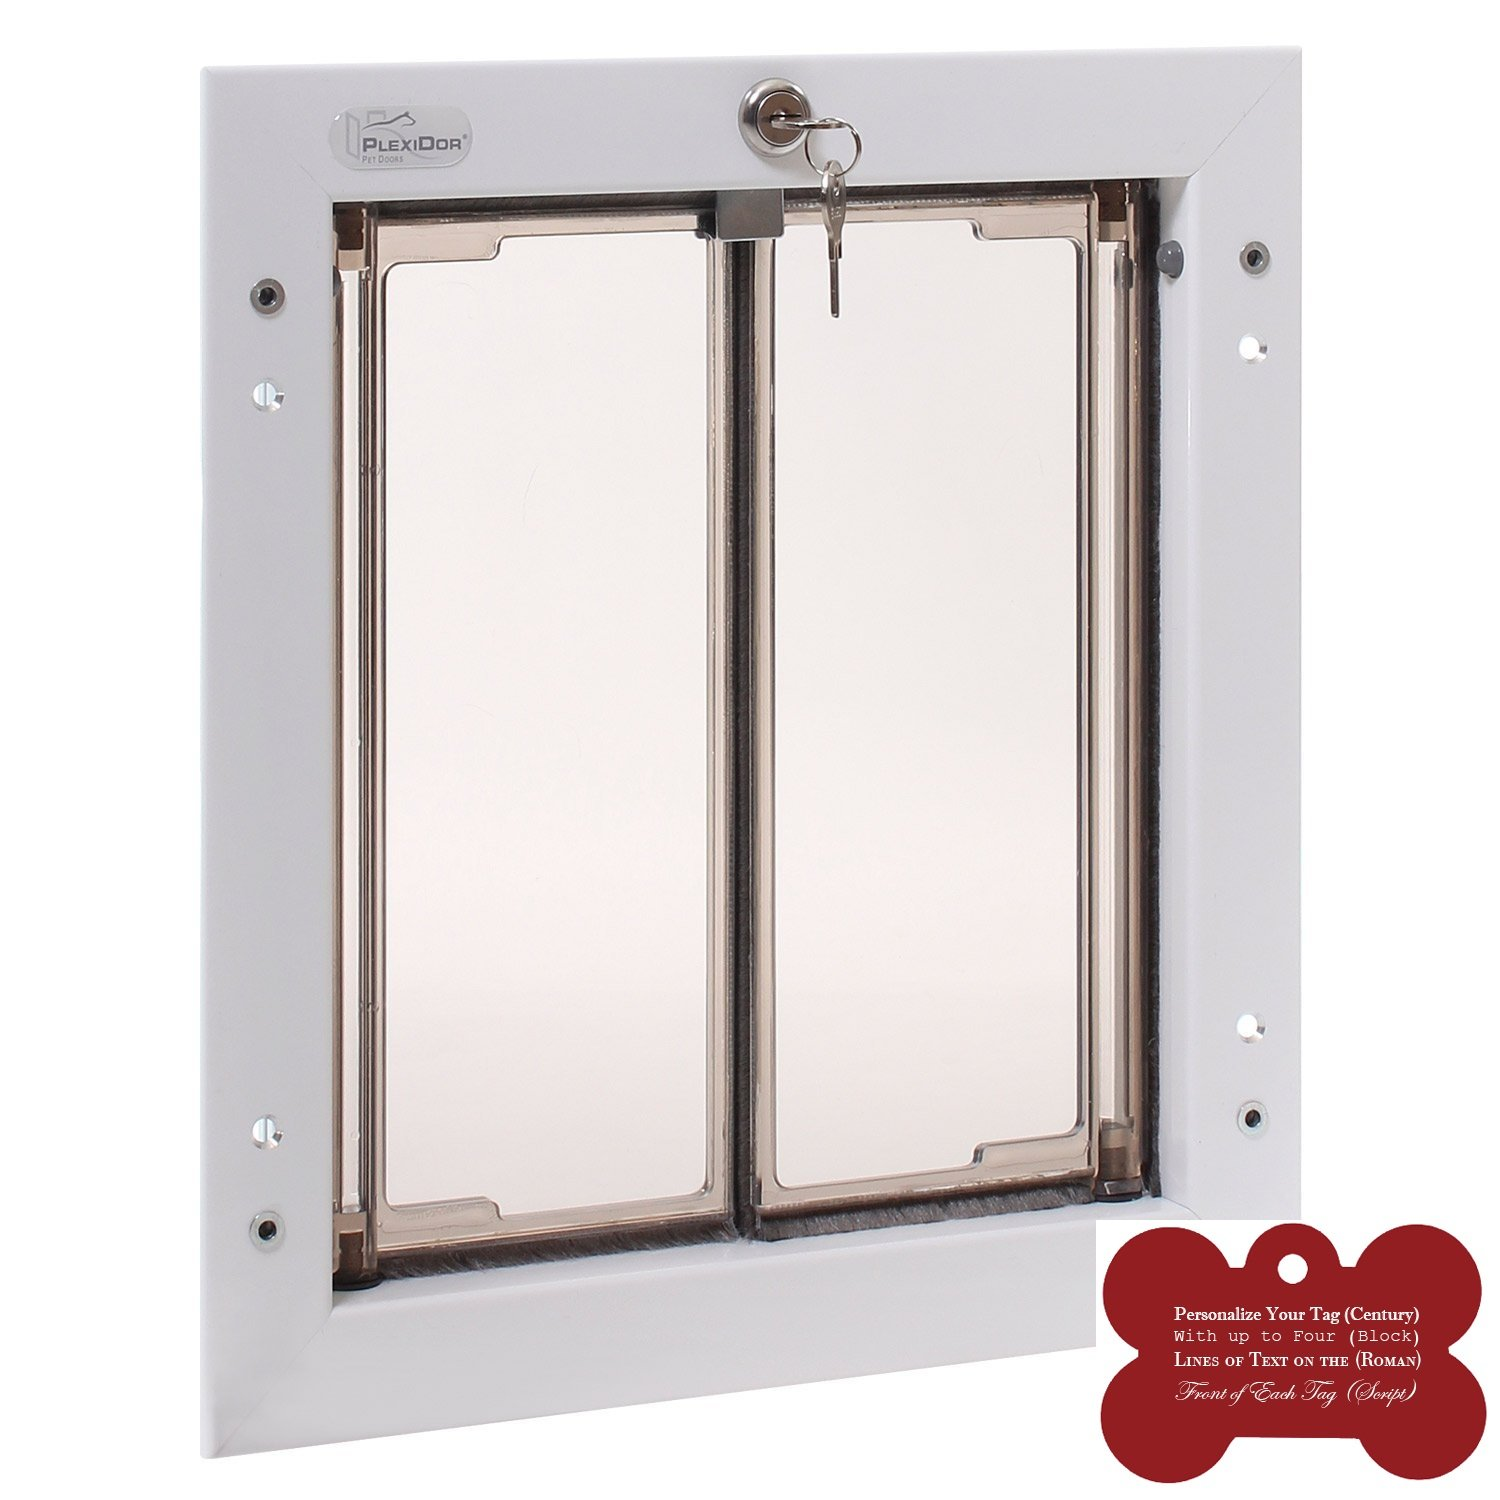 Plexidor Exterior Pet Door Medium - White Door Mounted - Energy Efficient and Secure Dog Door NO FLAPS TO REPLACE EVER - 10 Year Warranty and FREE Customized Bone Shape Dog Tag Bundle